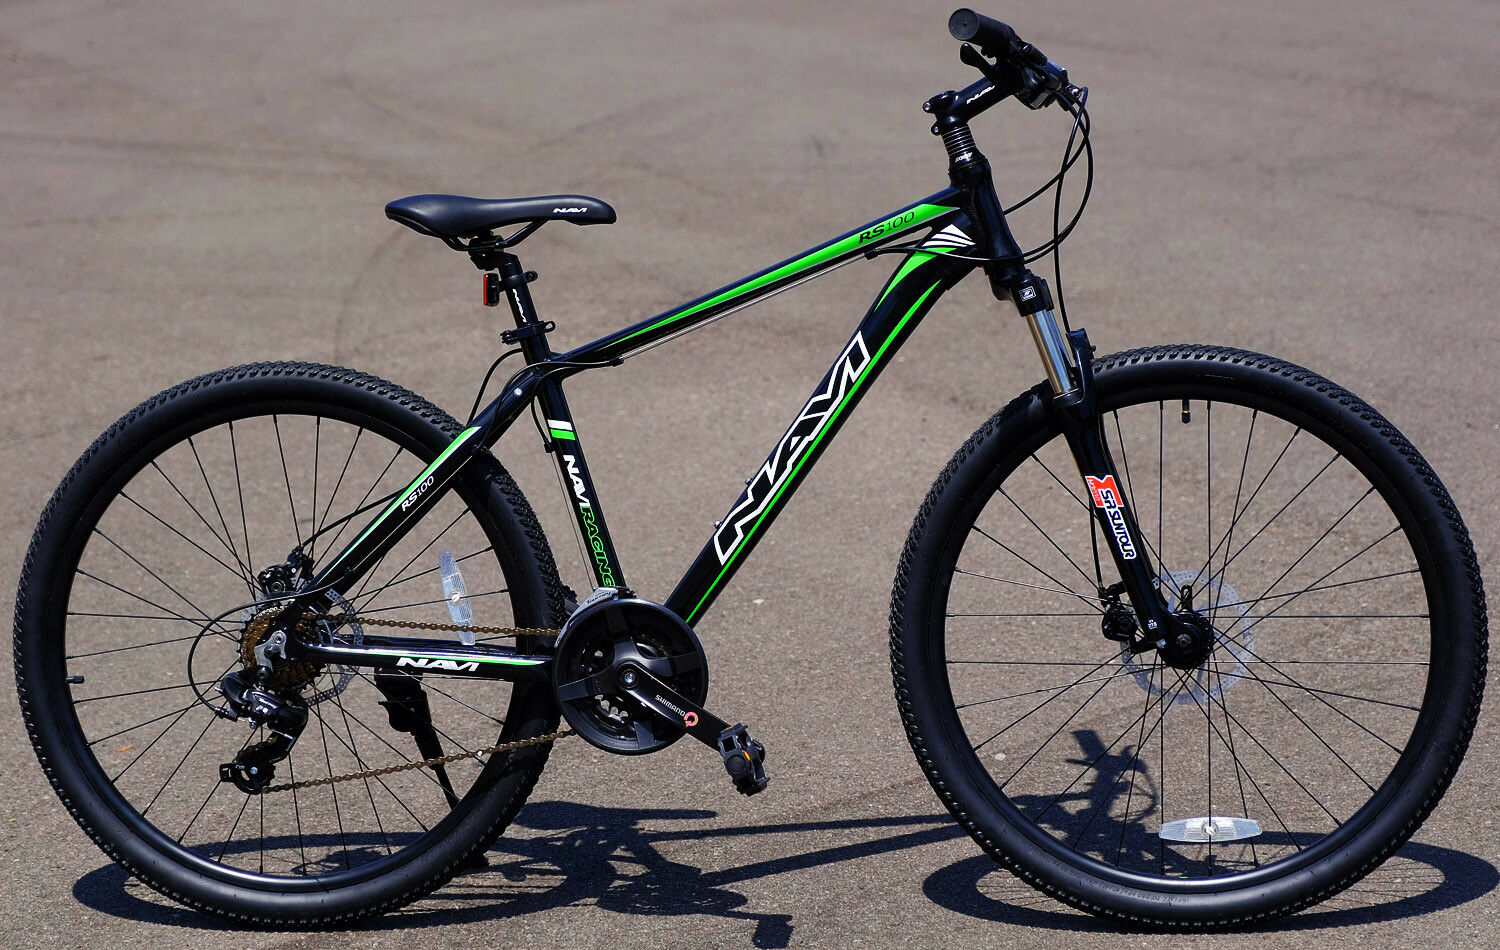 Navi Aluminum Mountain Bike 27.5  Wheel Disc Brakes Shimano 21-speed RS100 Green